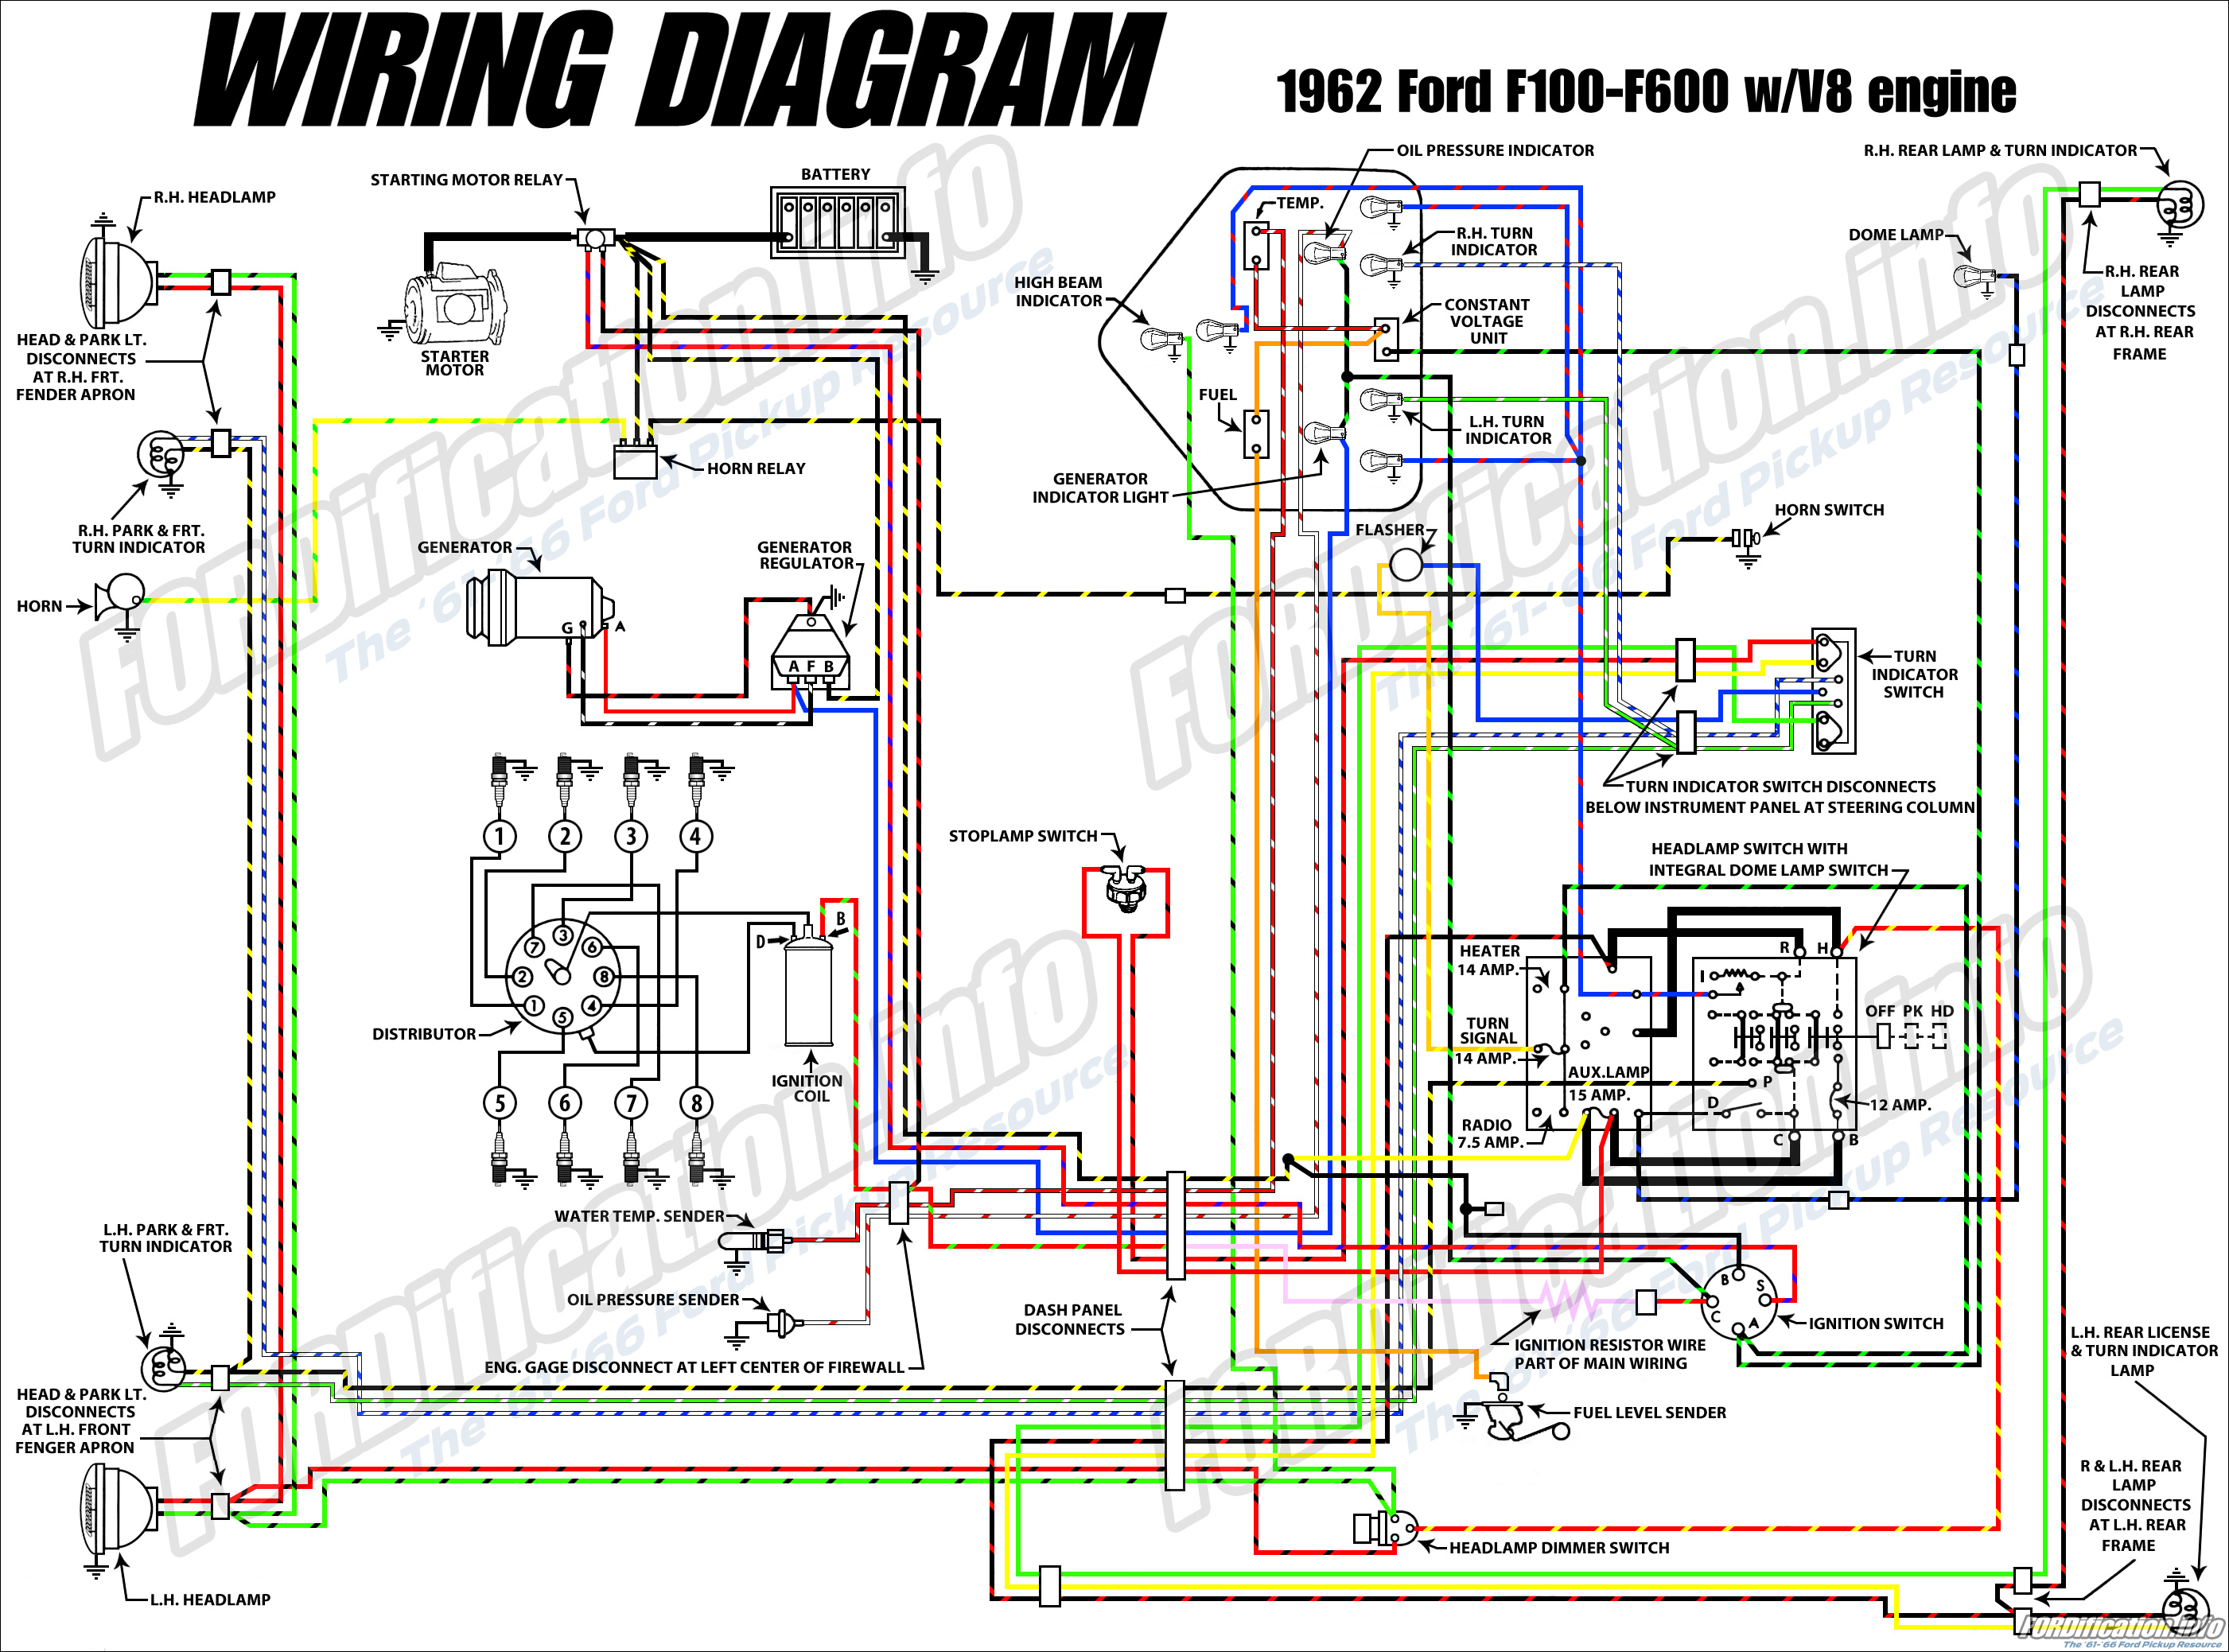 1969 Ford Truck Wiring Diagram - Wiring Diagram Data pipe-build -  pipe-build.portorhoca.it | 1969 Ford F150 Wiring Diagram |  | pipe-build.portorhoca.it